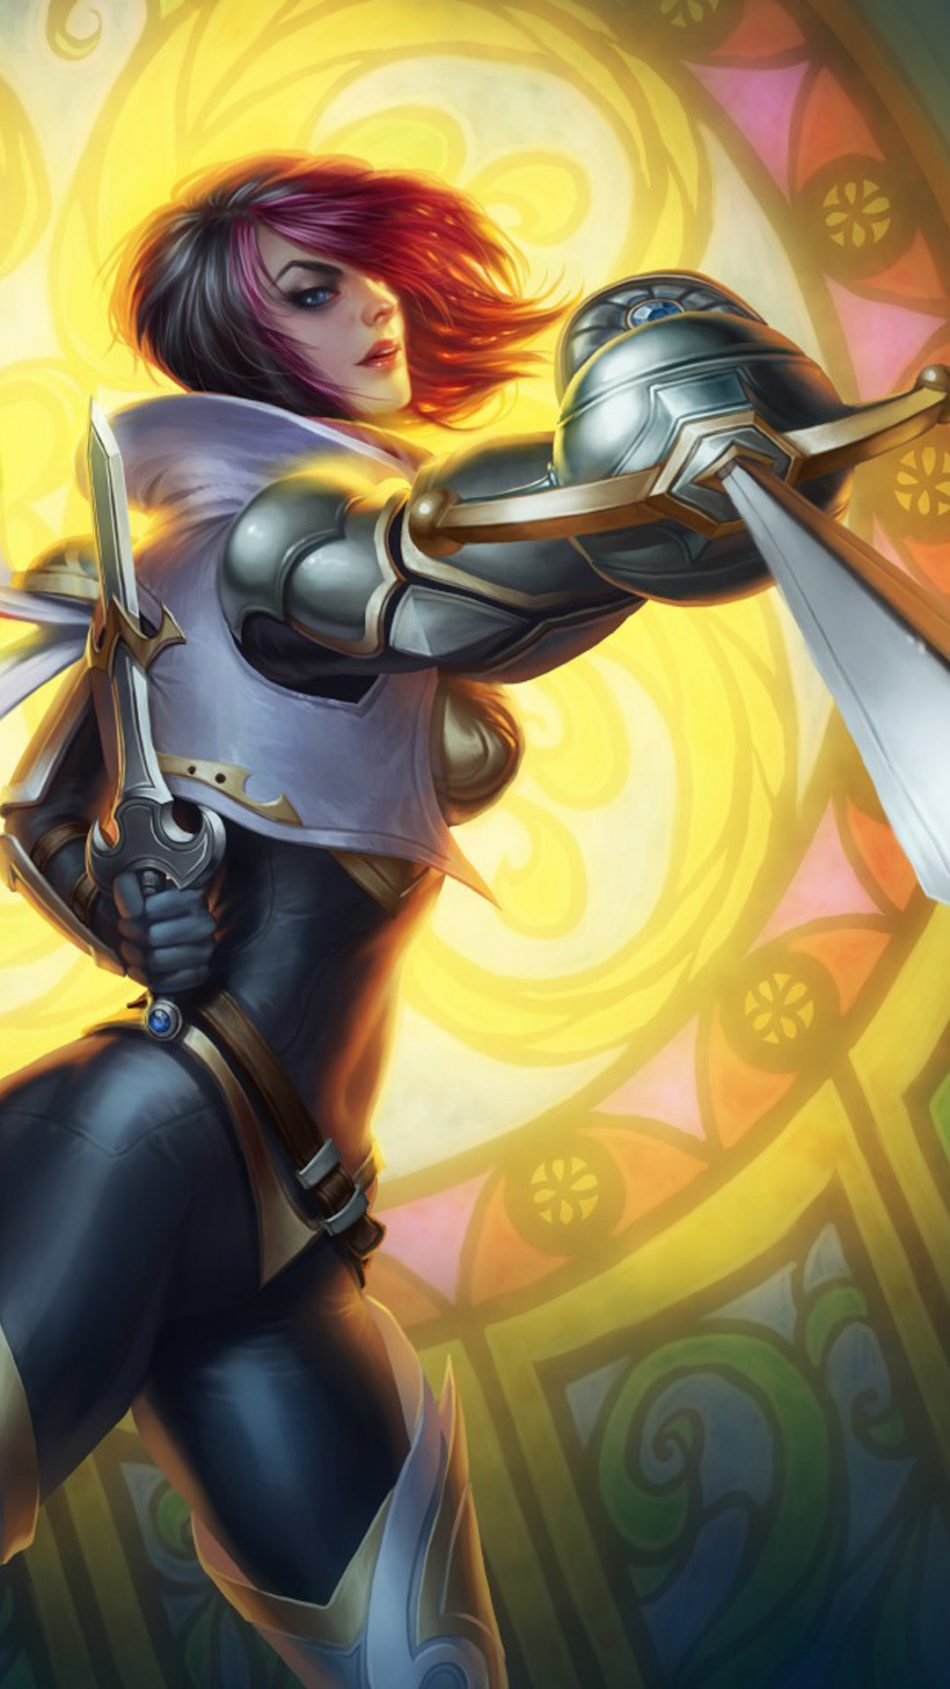 Fiora League Of Legends New Free 4k Ultra Hd Mobile Wallpaper